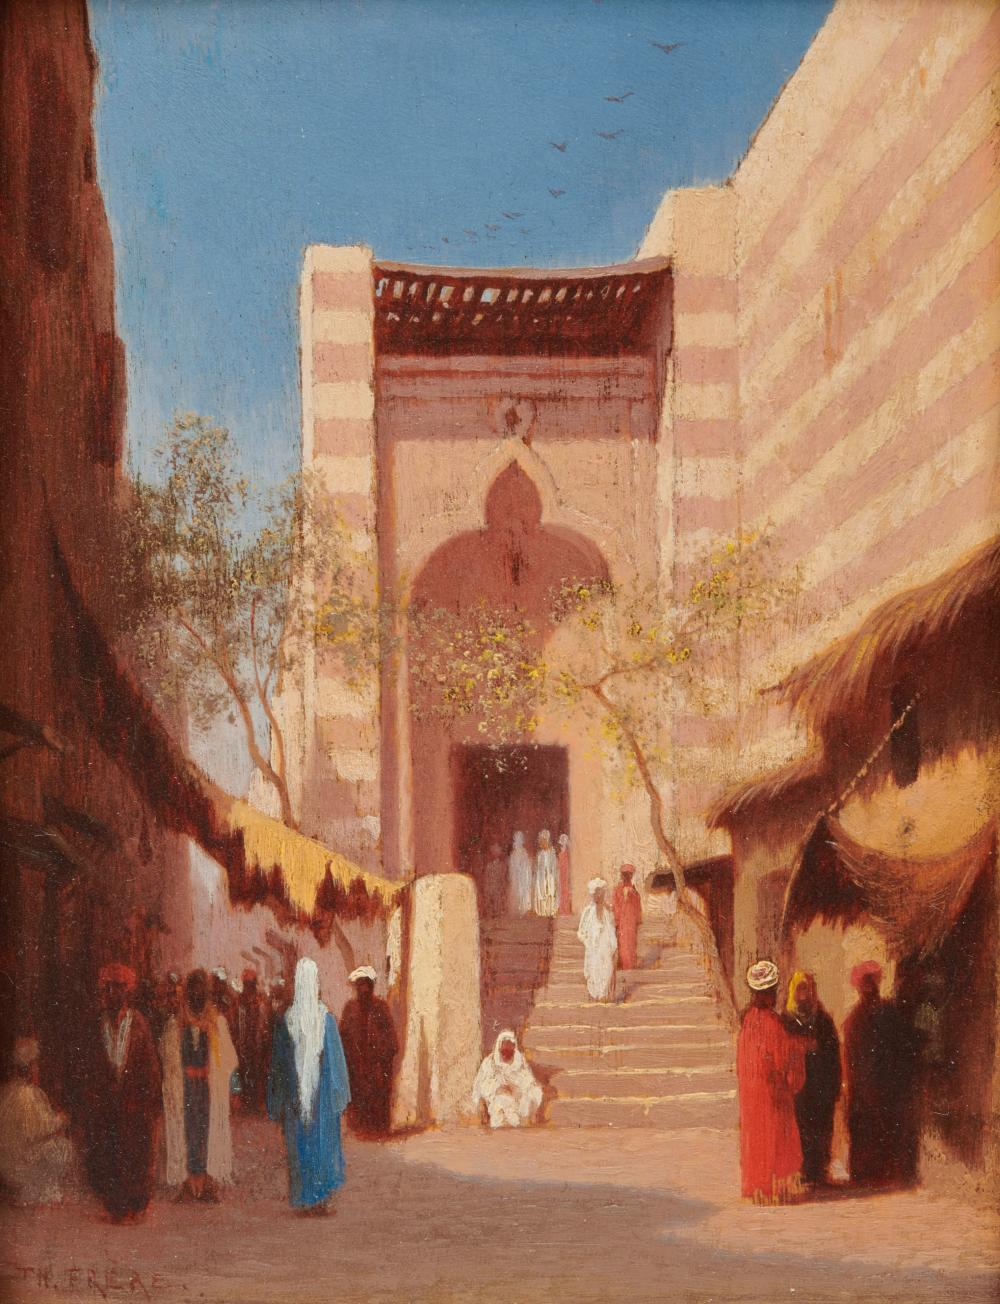 CHARLES-THEODORE FRERE, (French, 1814-1888), Entrance to the Mosque of Cairo, oil on panel, 6 3/4 x 5 in., frame: 14 1/4 x 12 3/4 in.